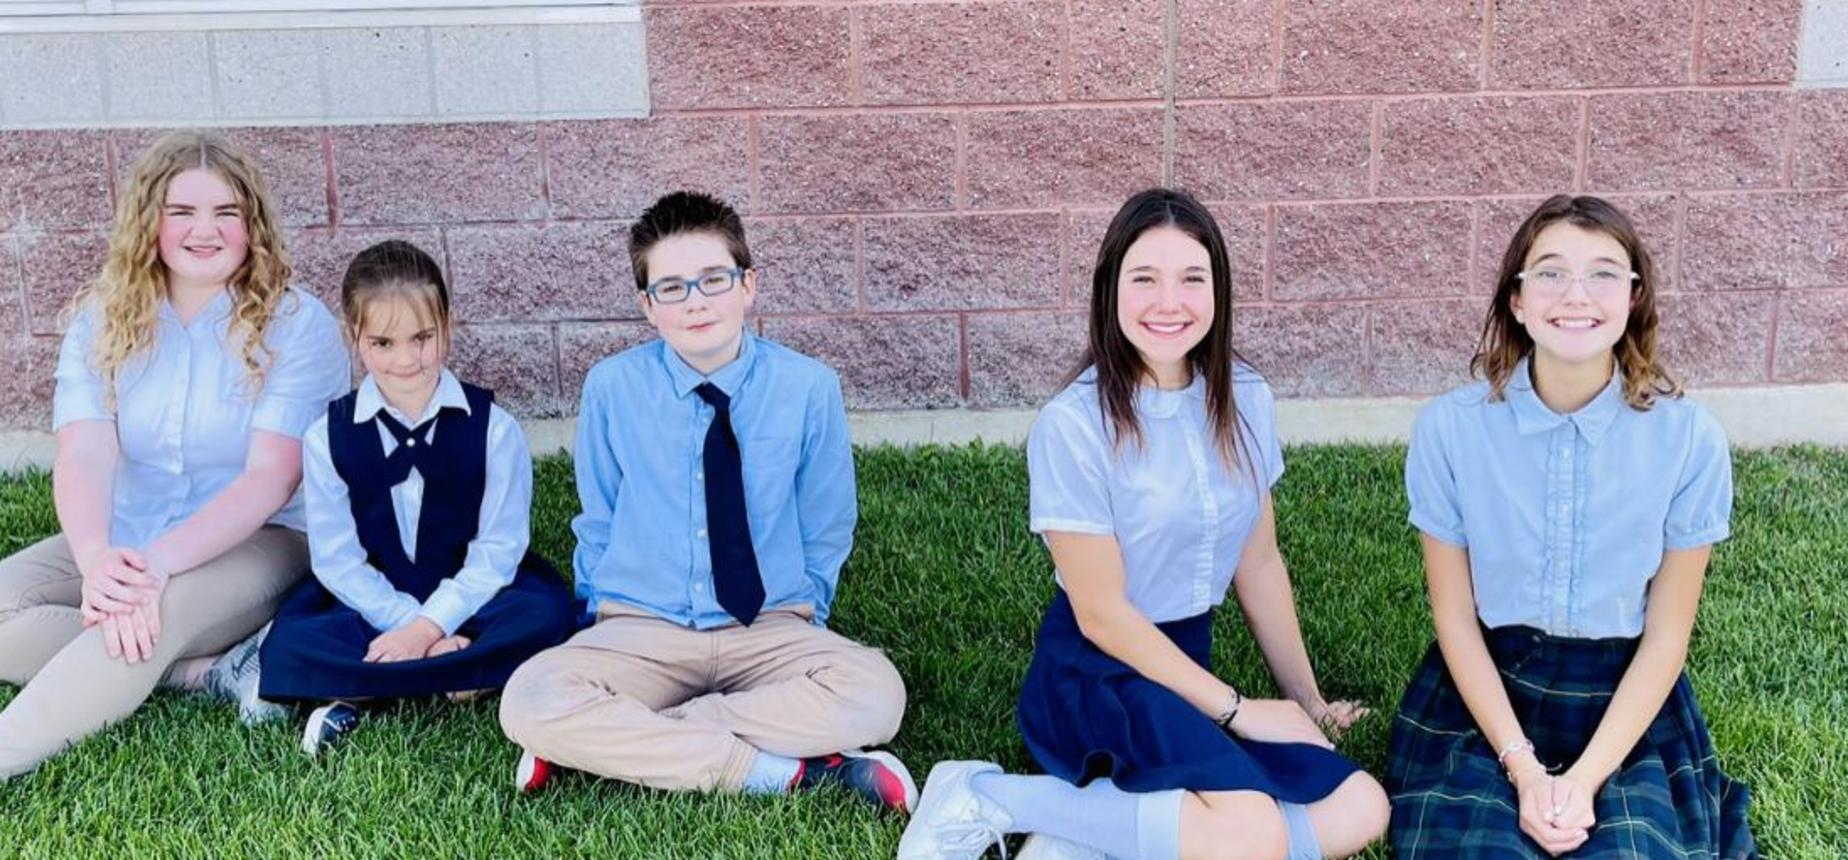 legacy prep best charter school in utah give children sitting on the grass